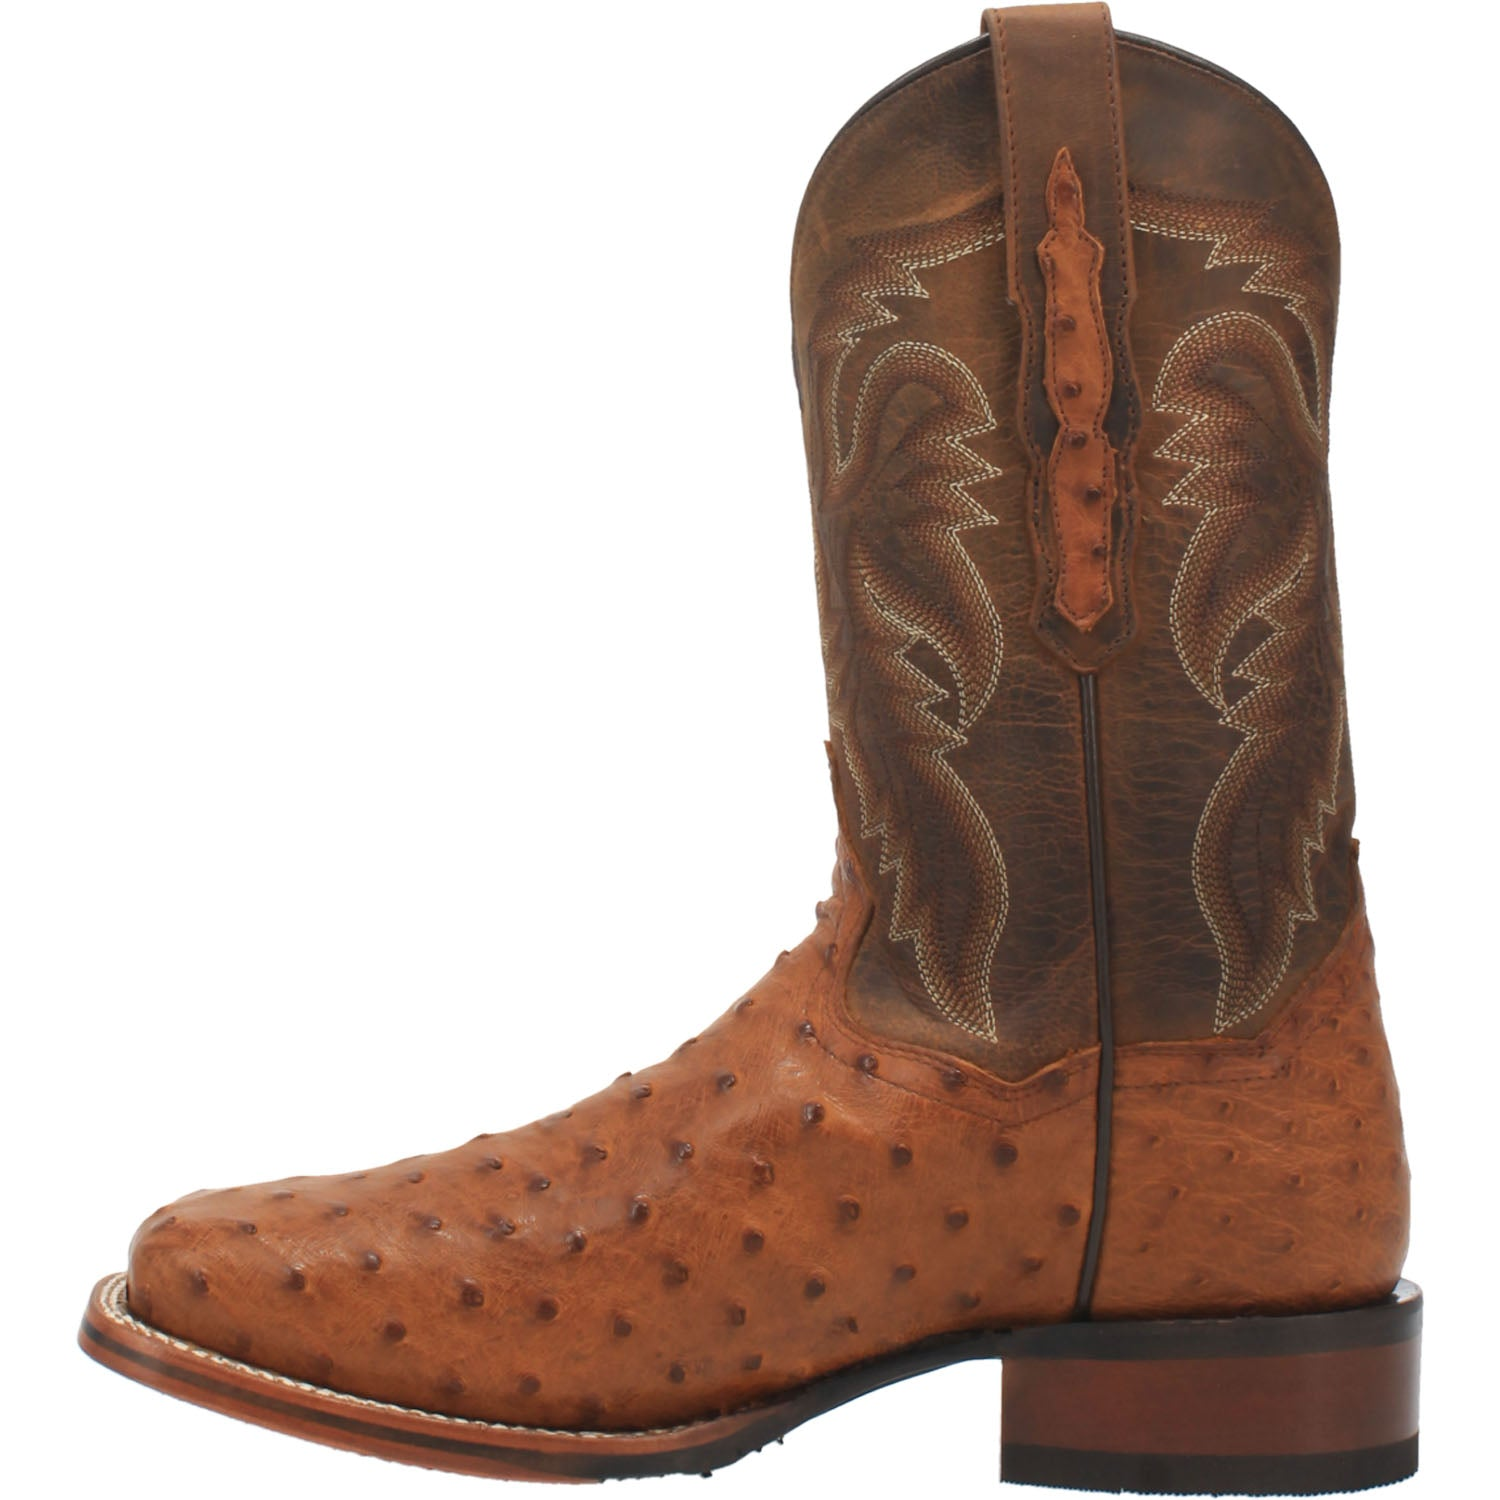 ALAMOSA FULL QUILL OSTRICH BOOT 15677888692266